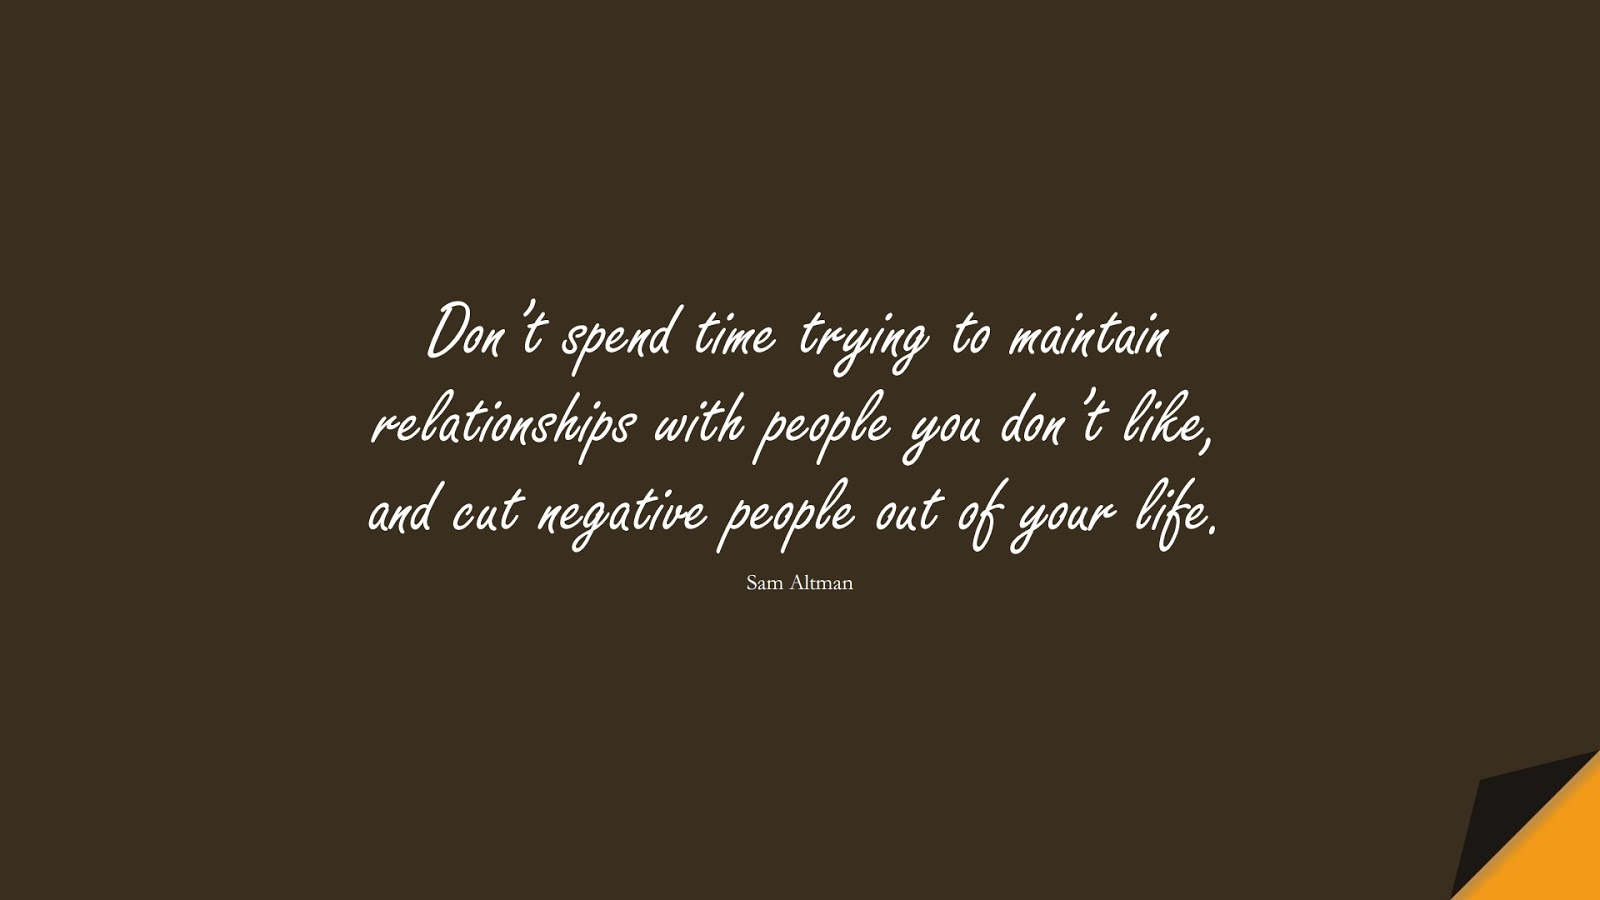 Don't spend time trying to maintain relationships with people you don't like, and cut negative people out of your life. (Sam Altman);  #RelationshipQuotes